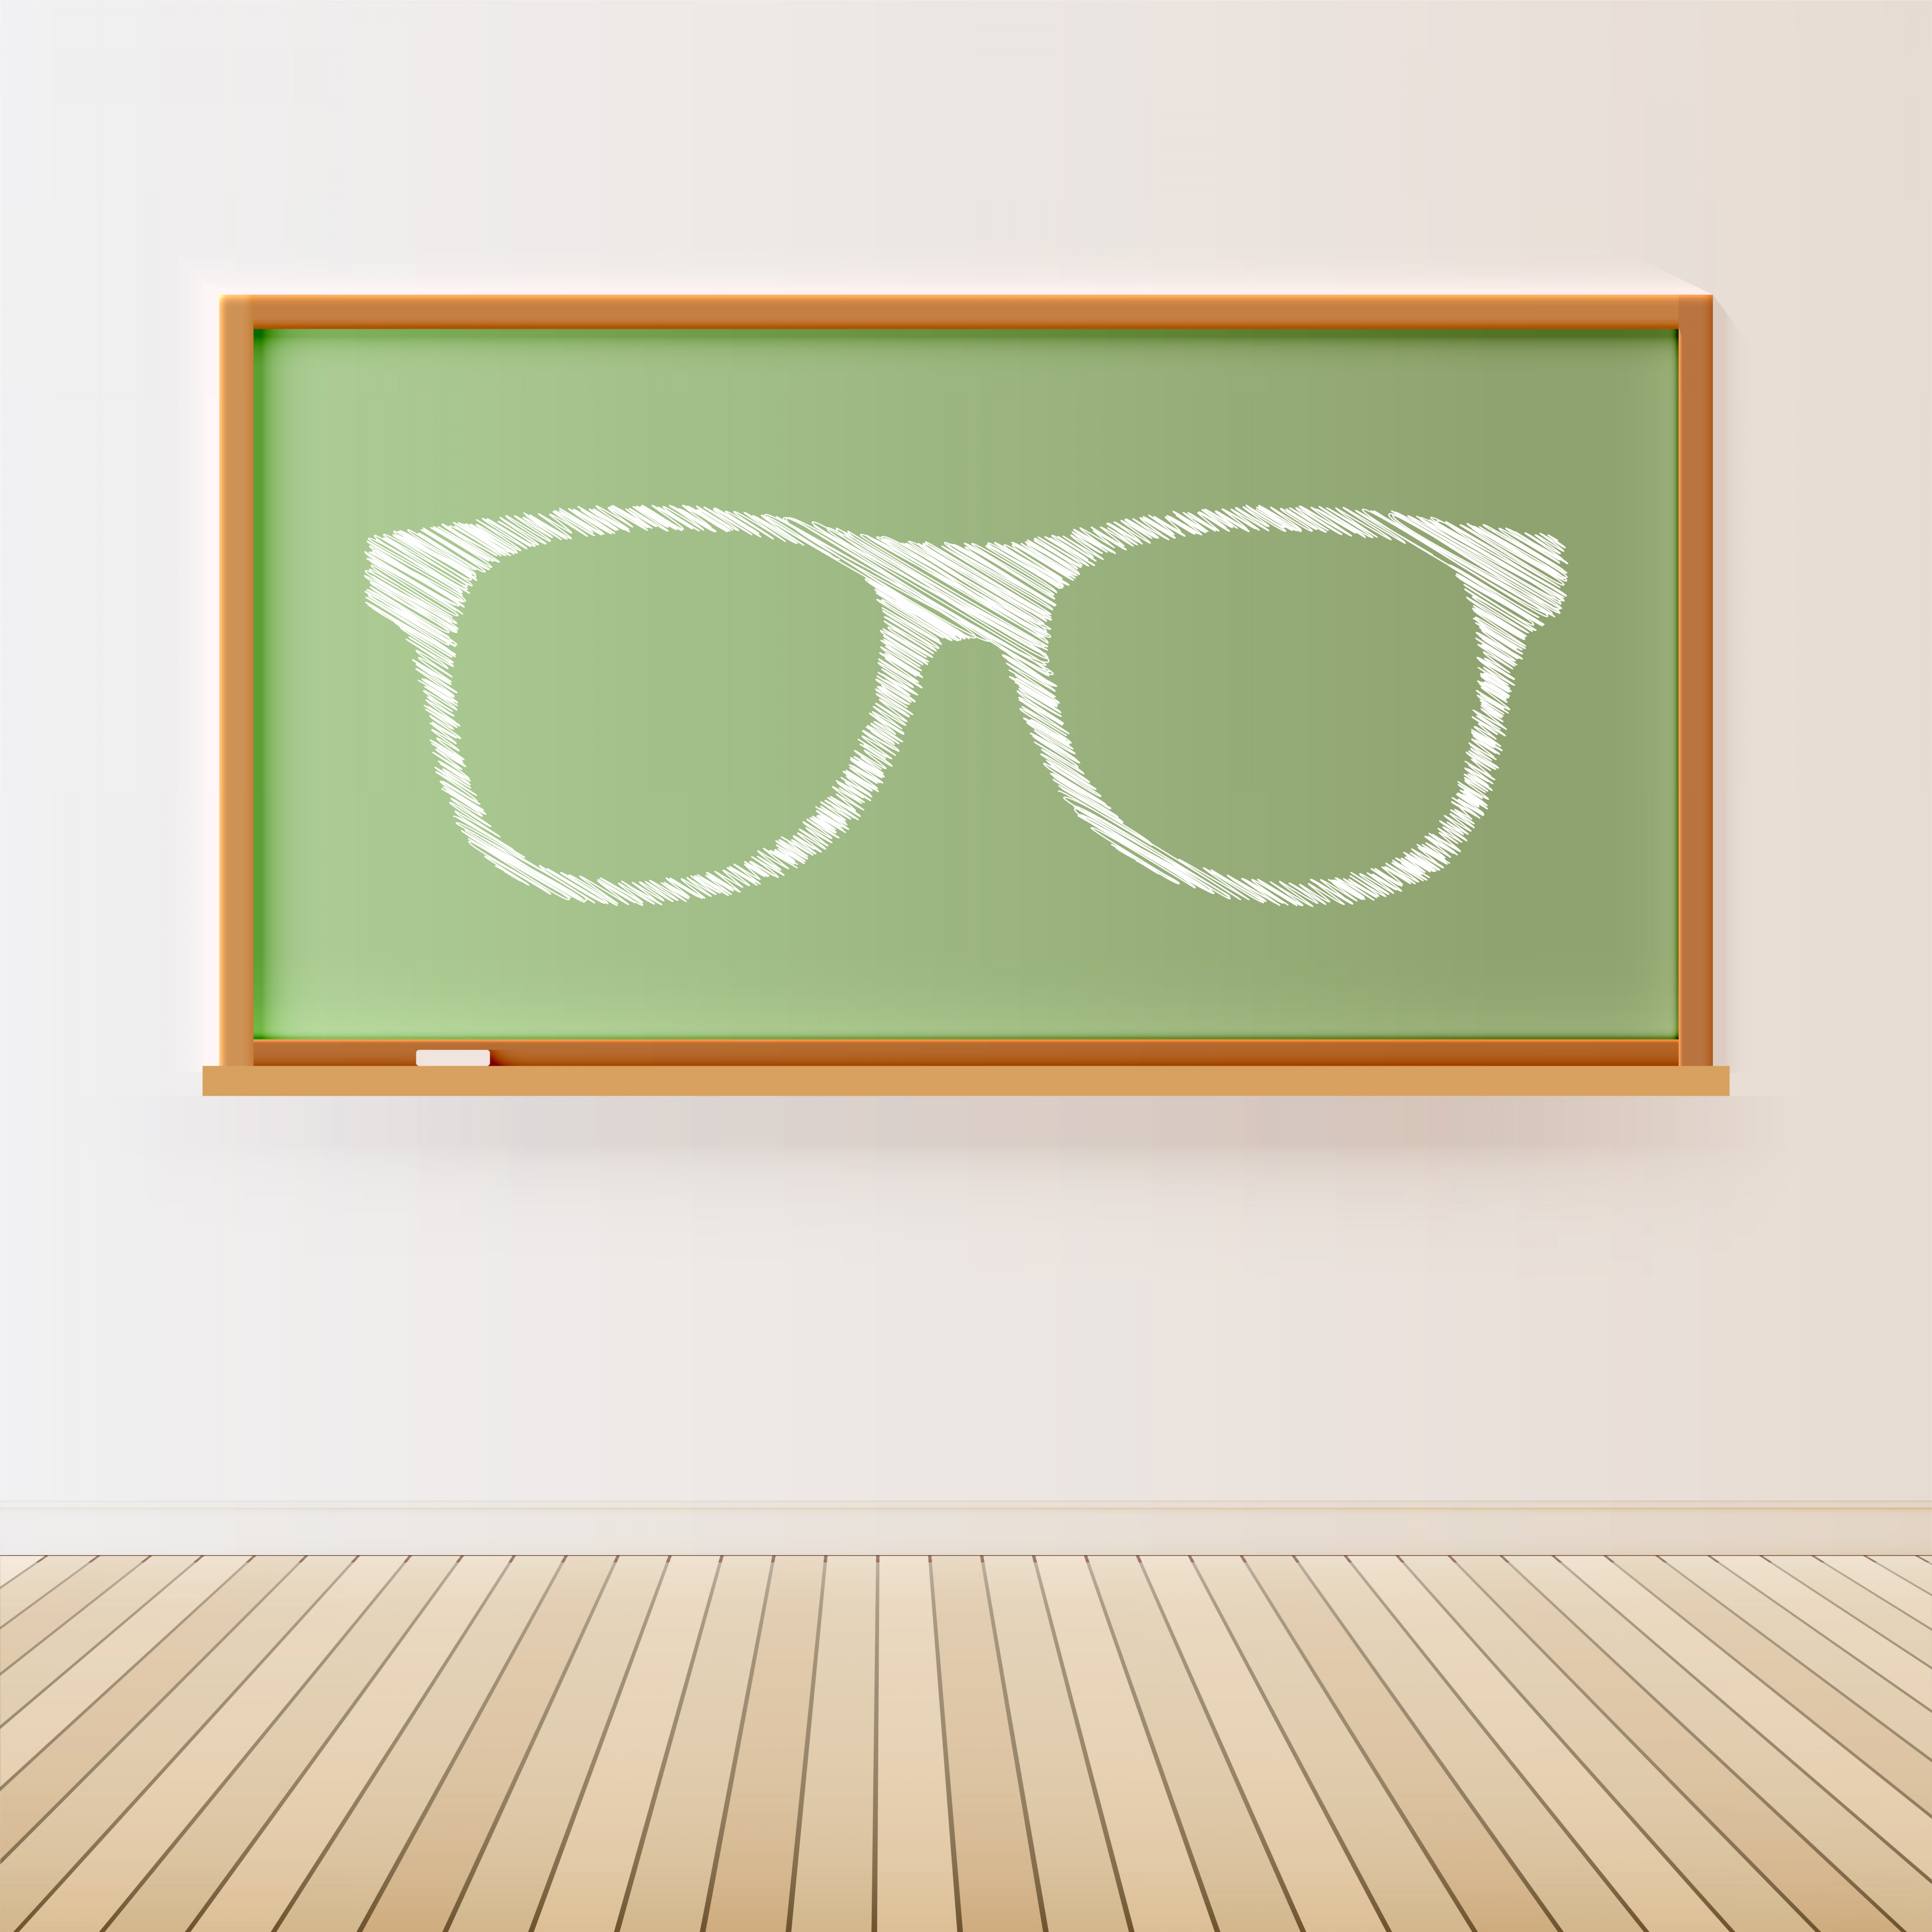 Vector Black Wood Floor: High Detailed Black Chalkboard With Wooden Floor And A Drawn Eyeglasses Vector Illustration